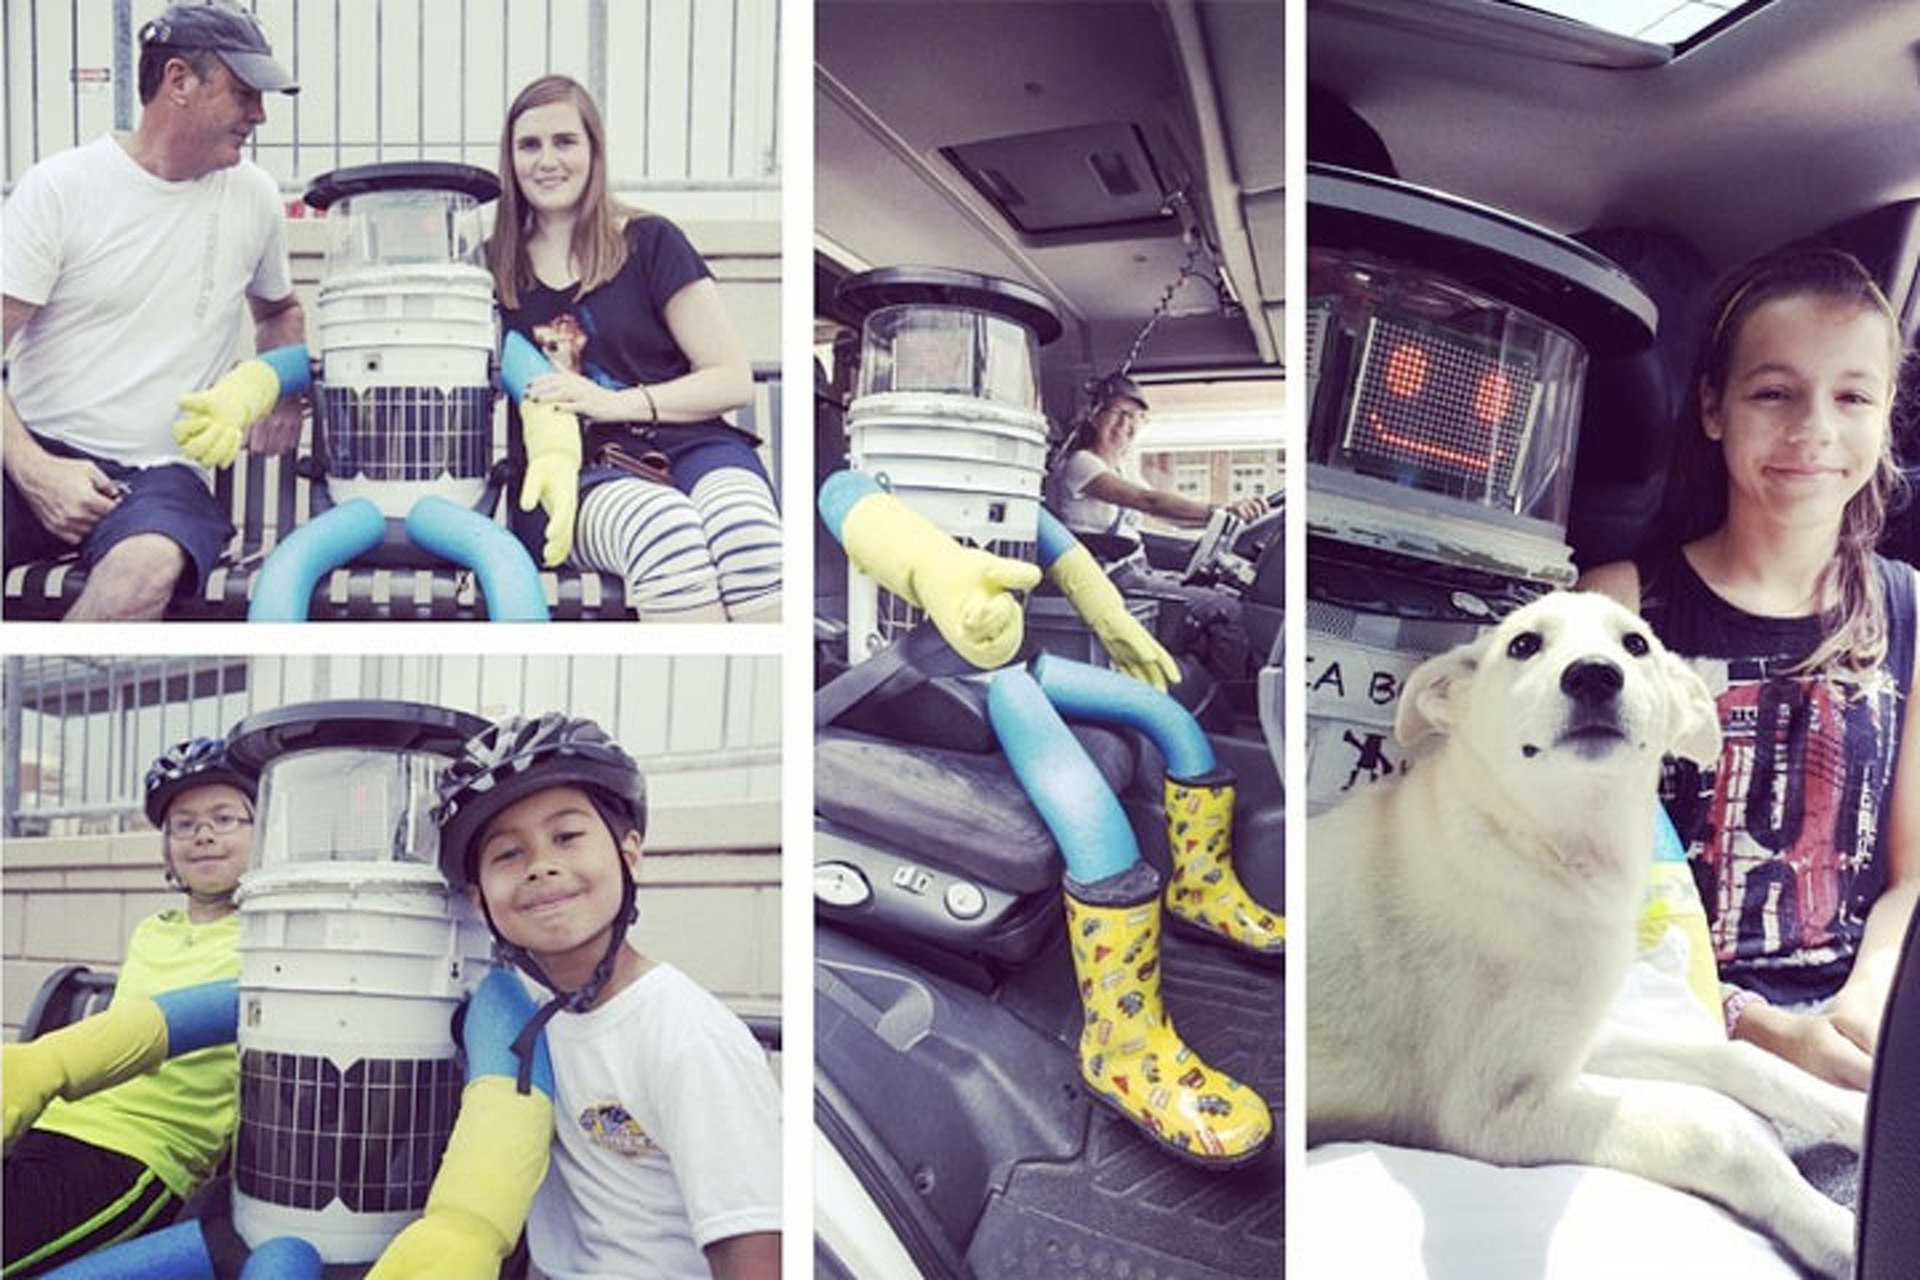 A Hitchhiking Robot is Making its Way Across Canada [w/Video]